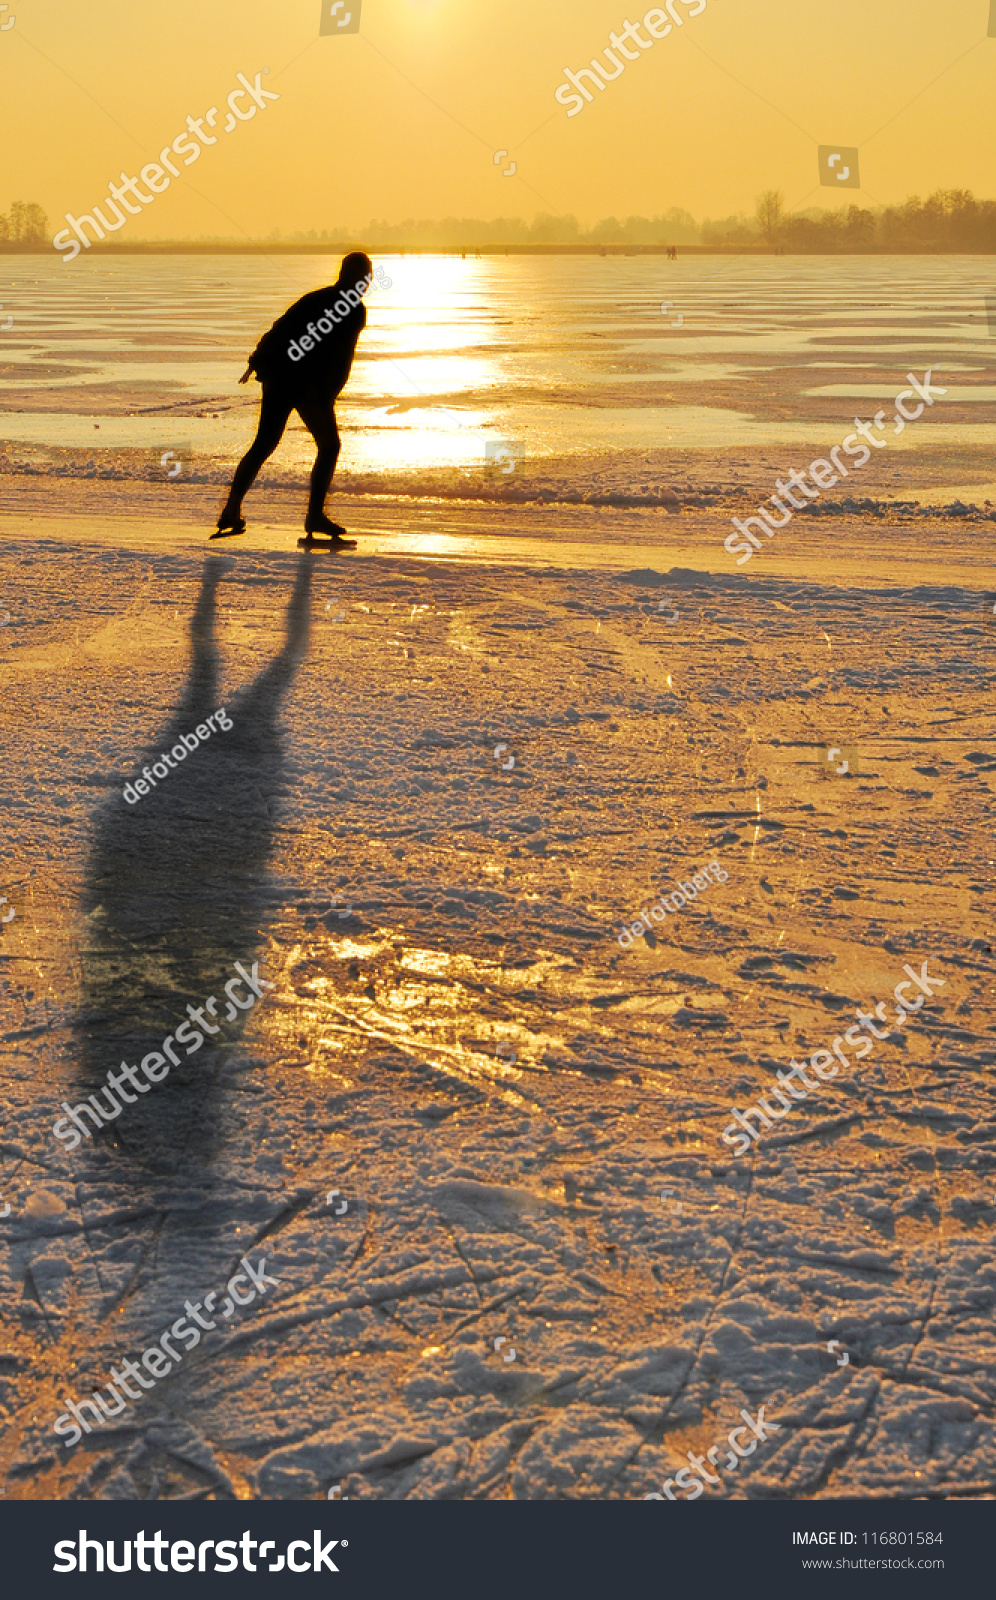 Ice skating - Ice skater at sunset on frozen lake in the Netherlands #116801584